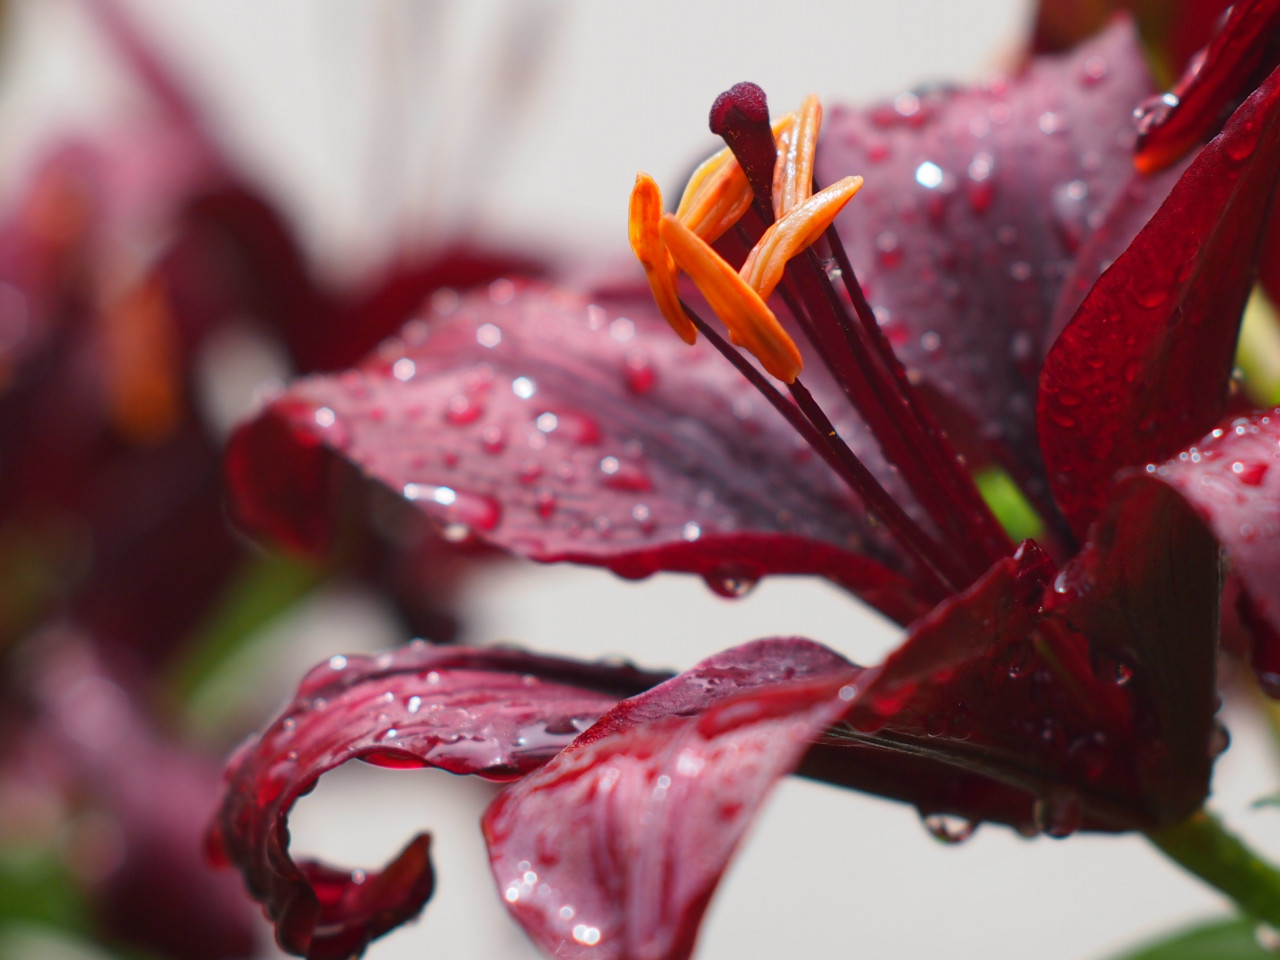 Lily flower and water drops | 1280x960 wallpaper